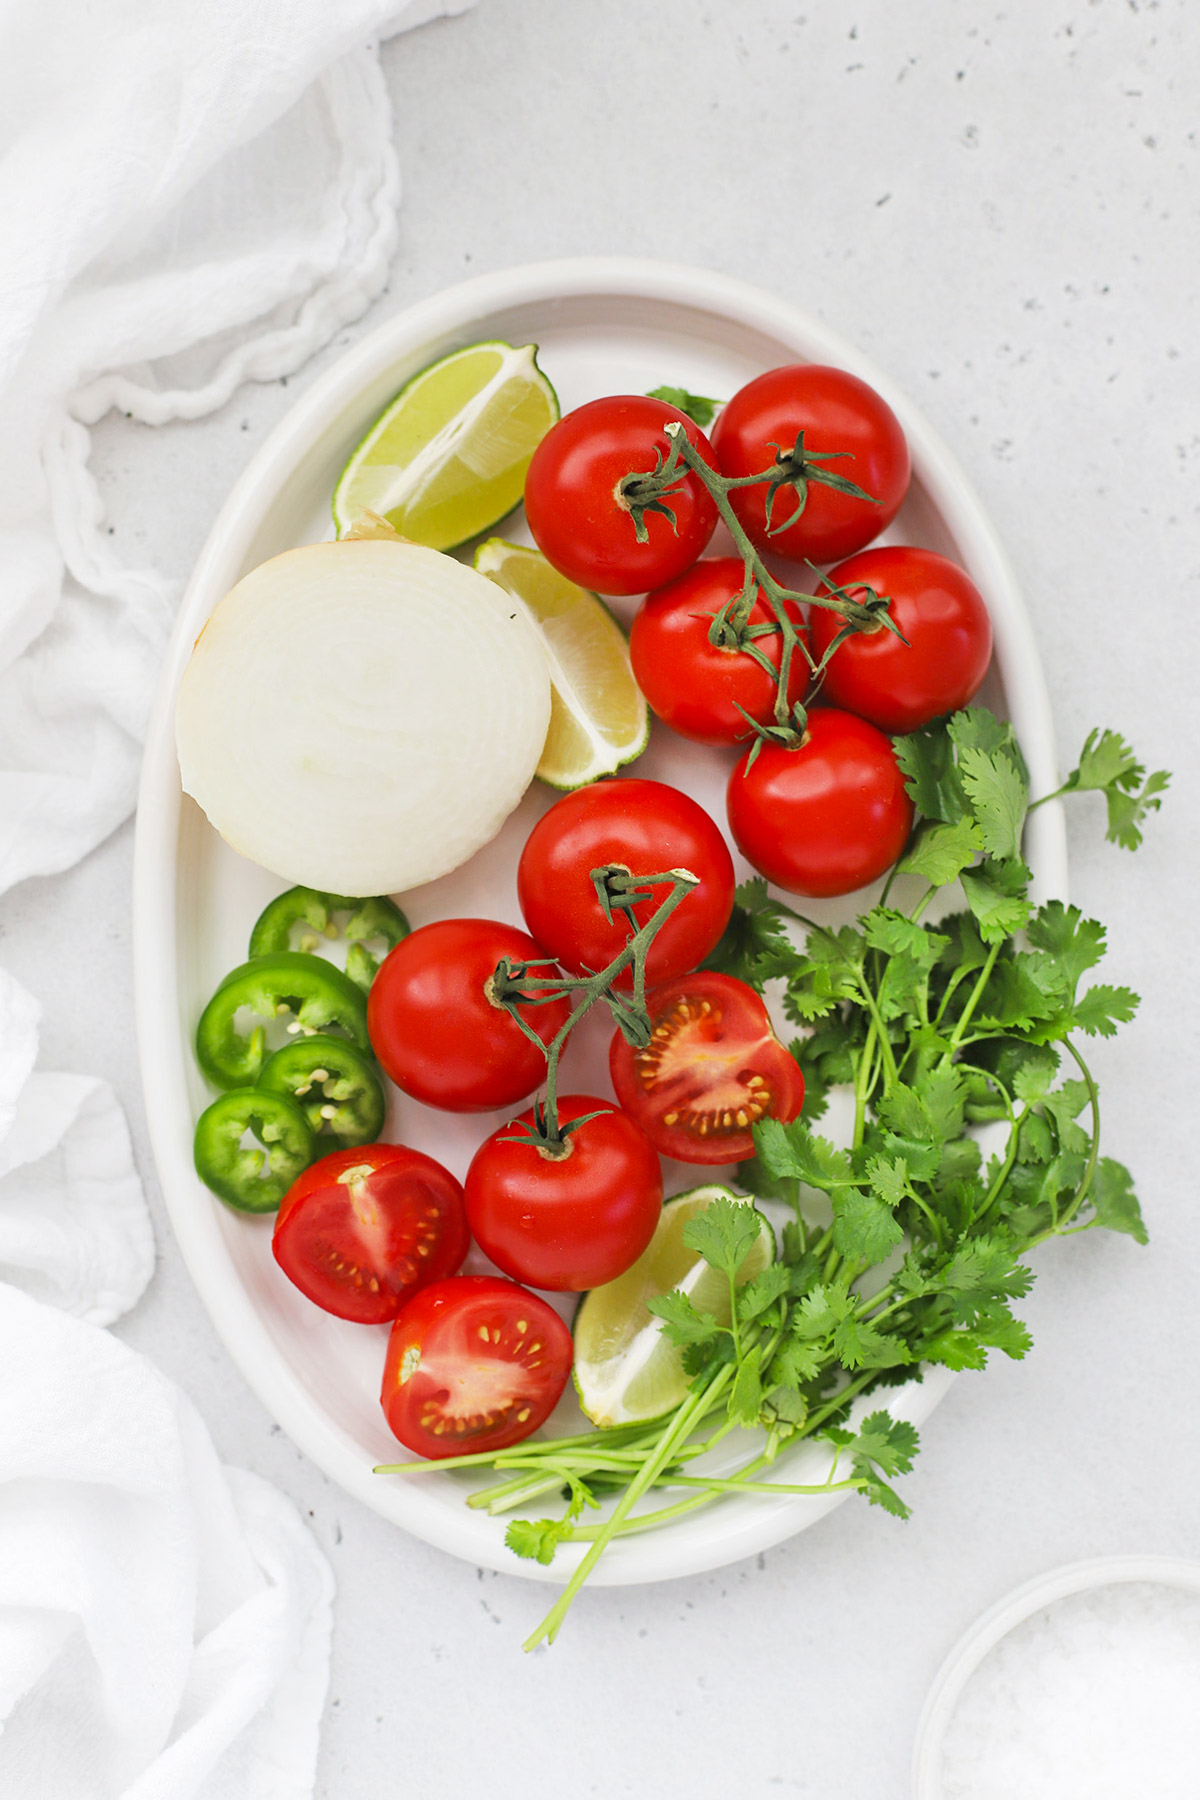 Overhead view of a platter of ingredients for pico de gallo